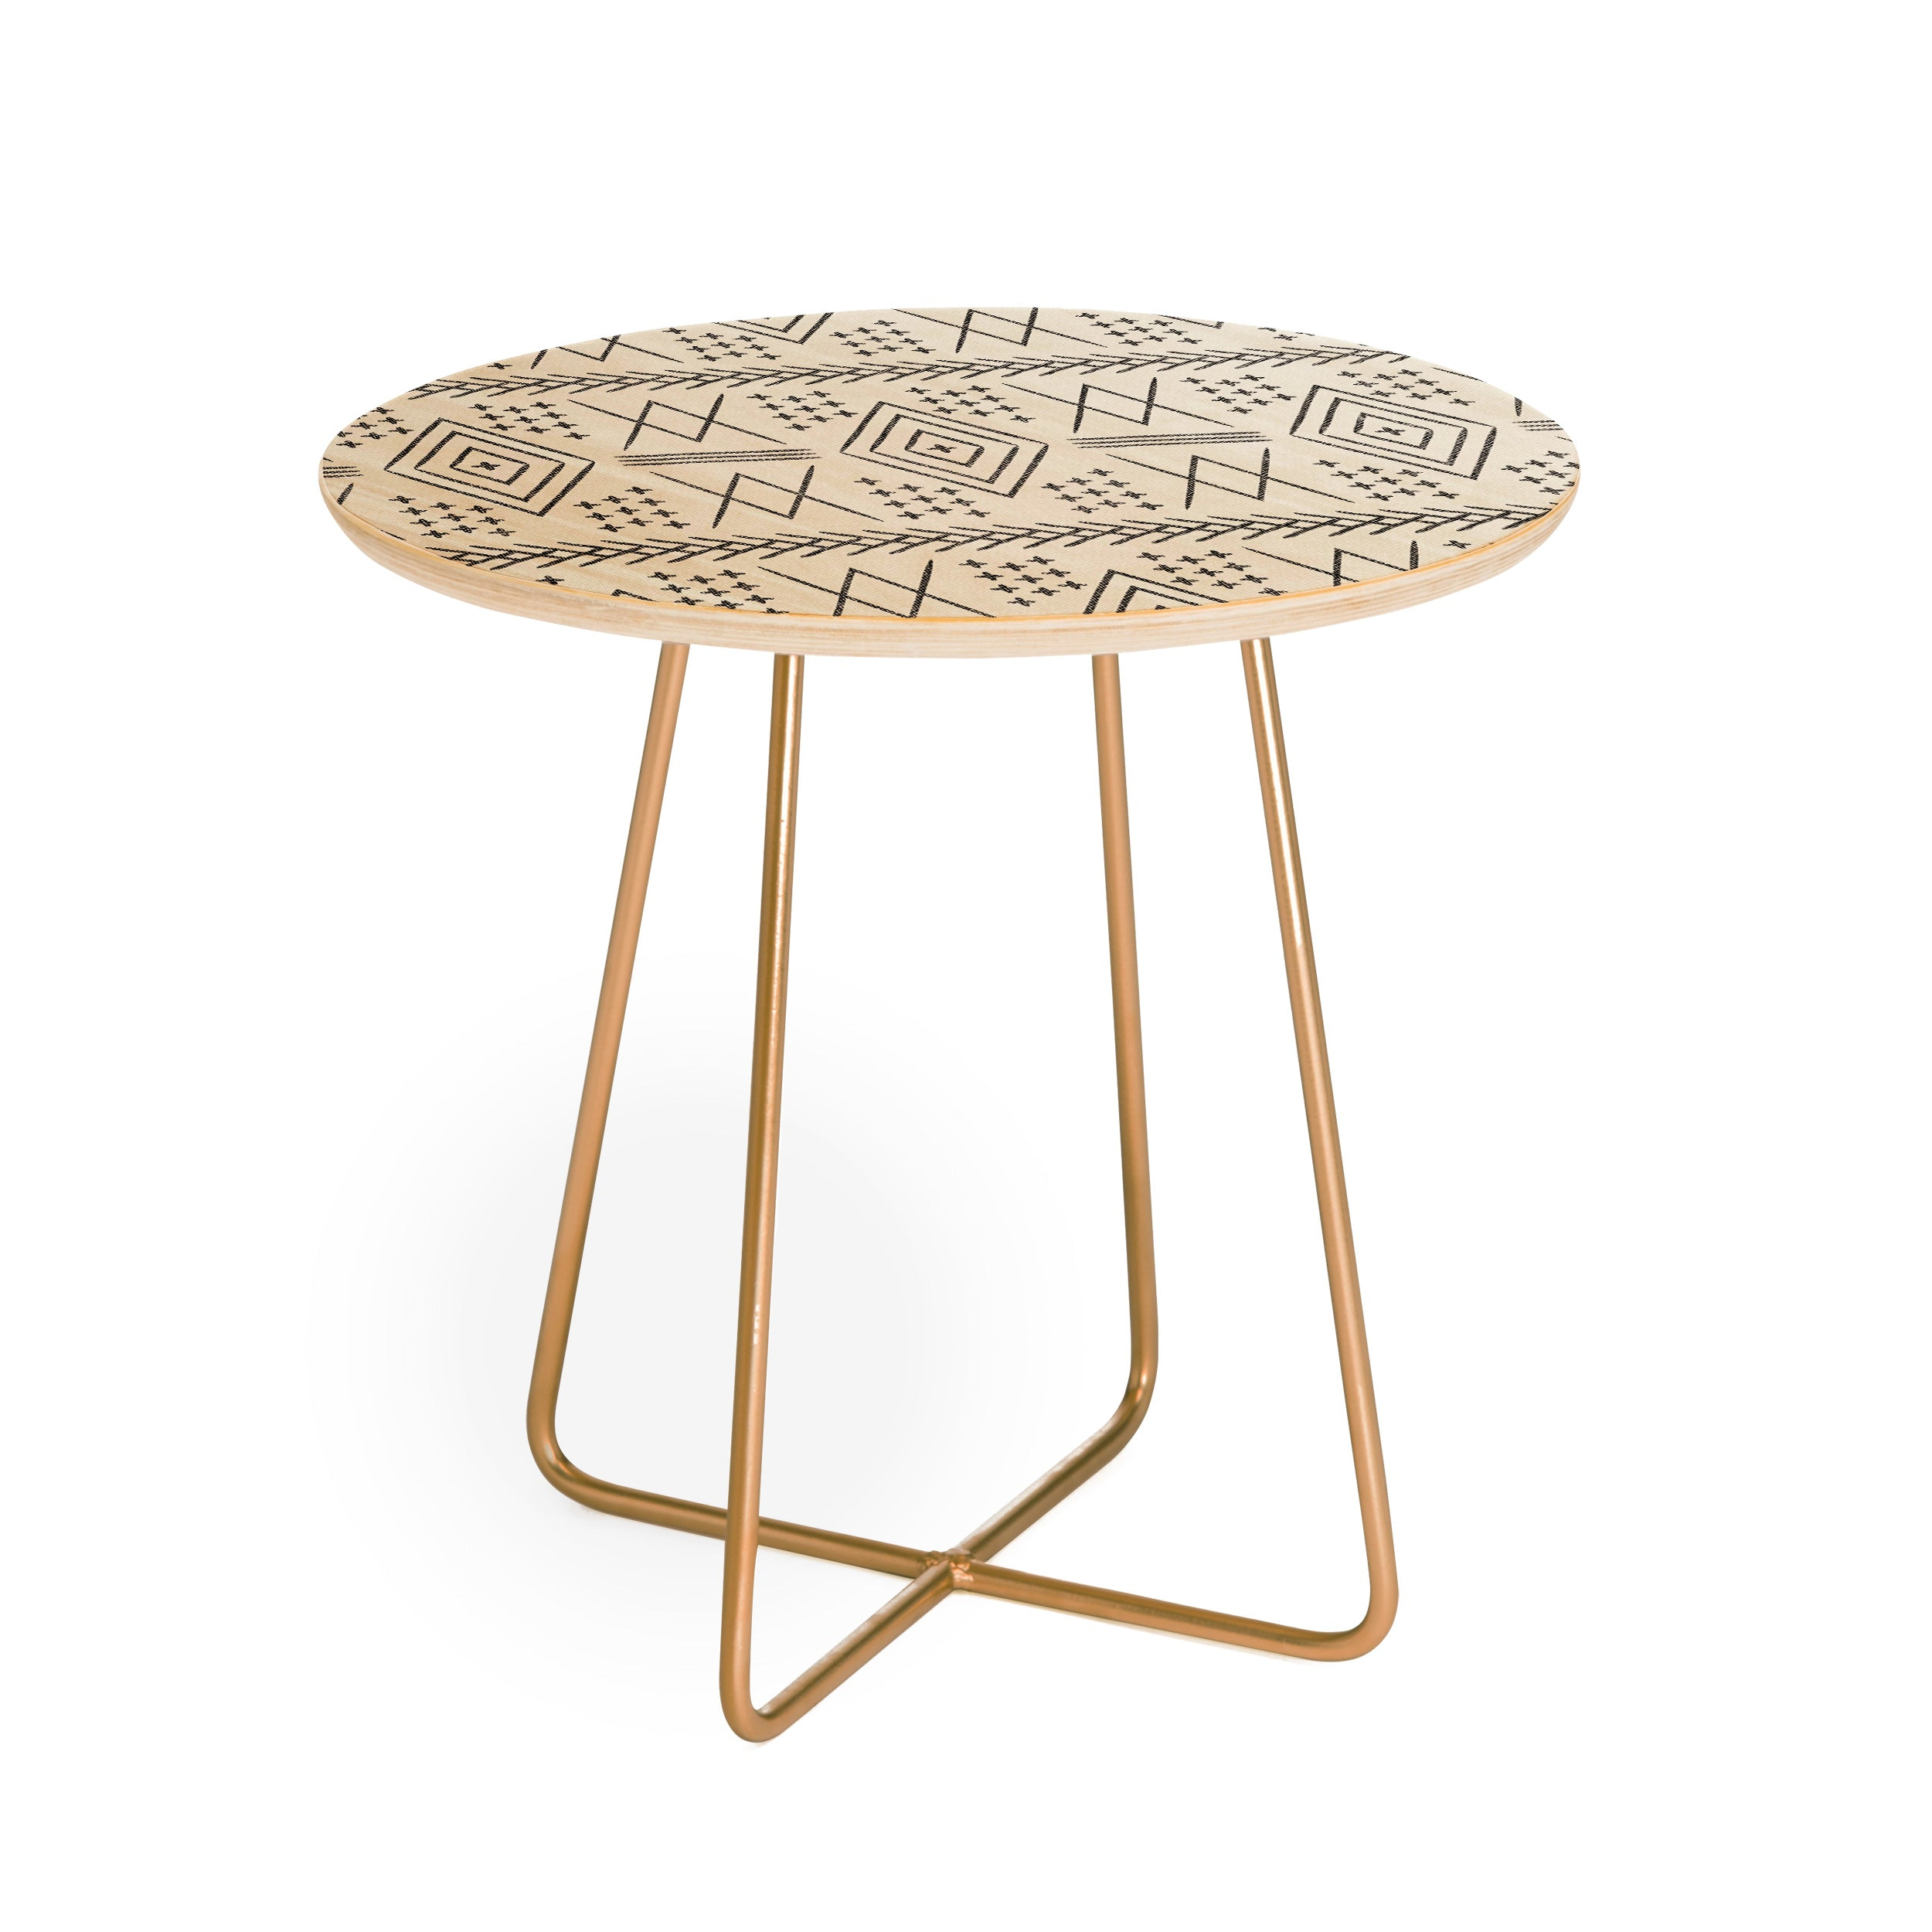 Little Arrow Design Co Vintage Moroccan Round Side Table